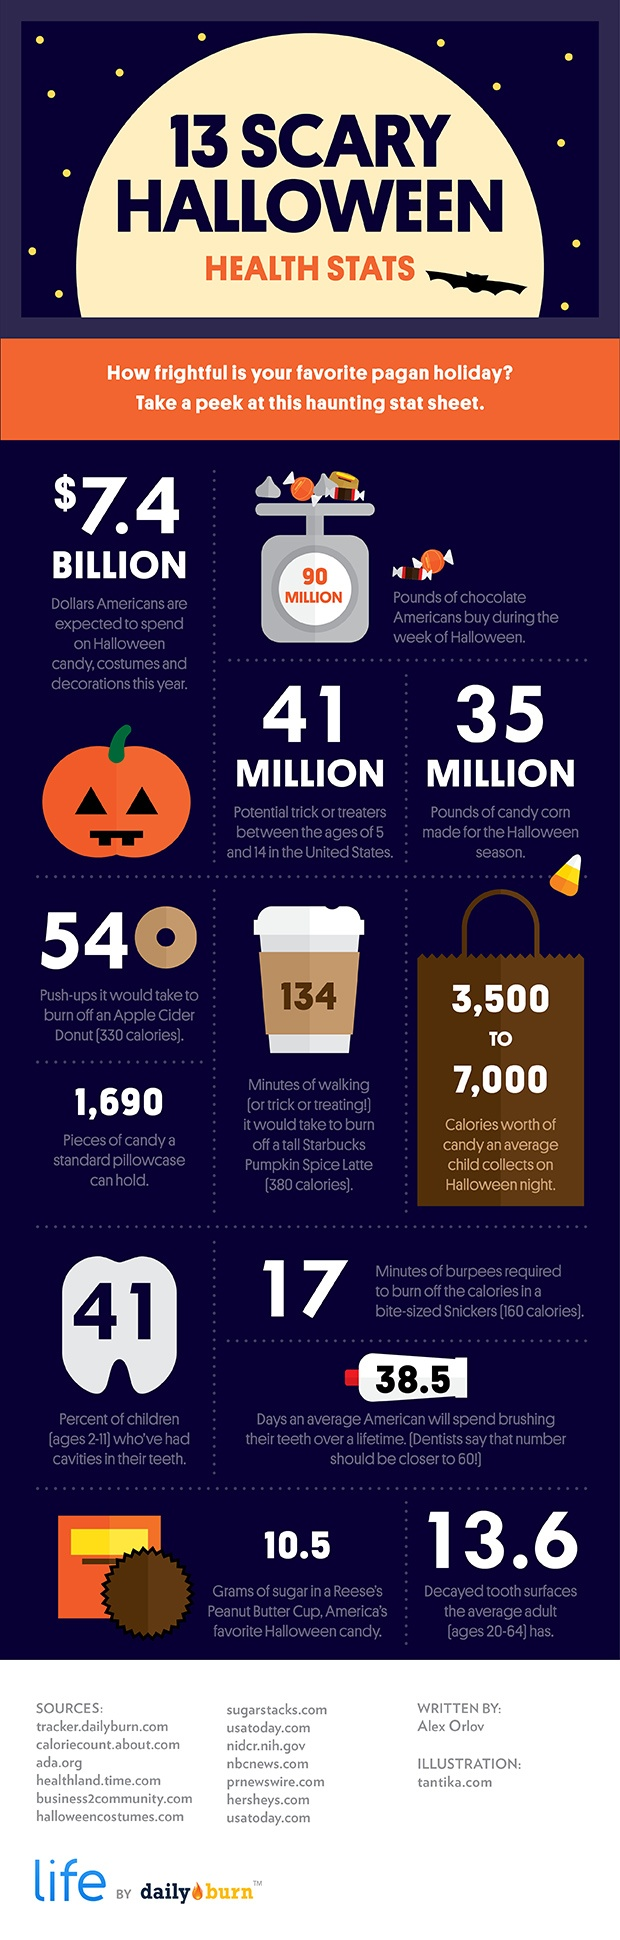 13 Scary Halloween Health Stats You Need to See - Infographic